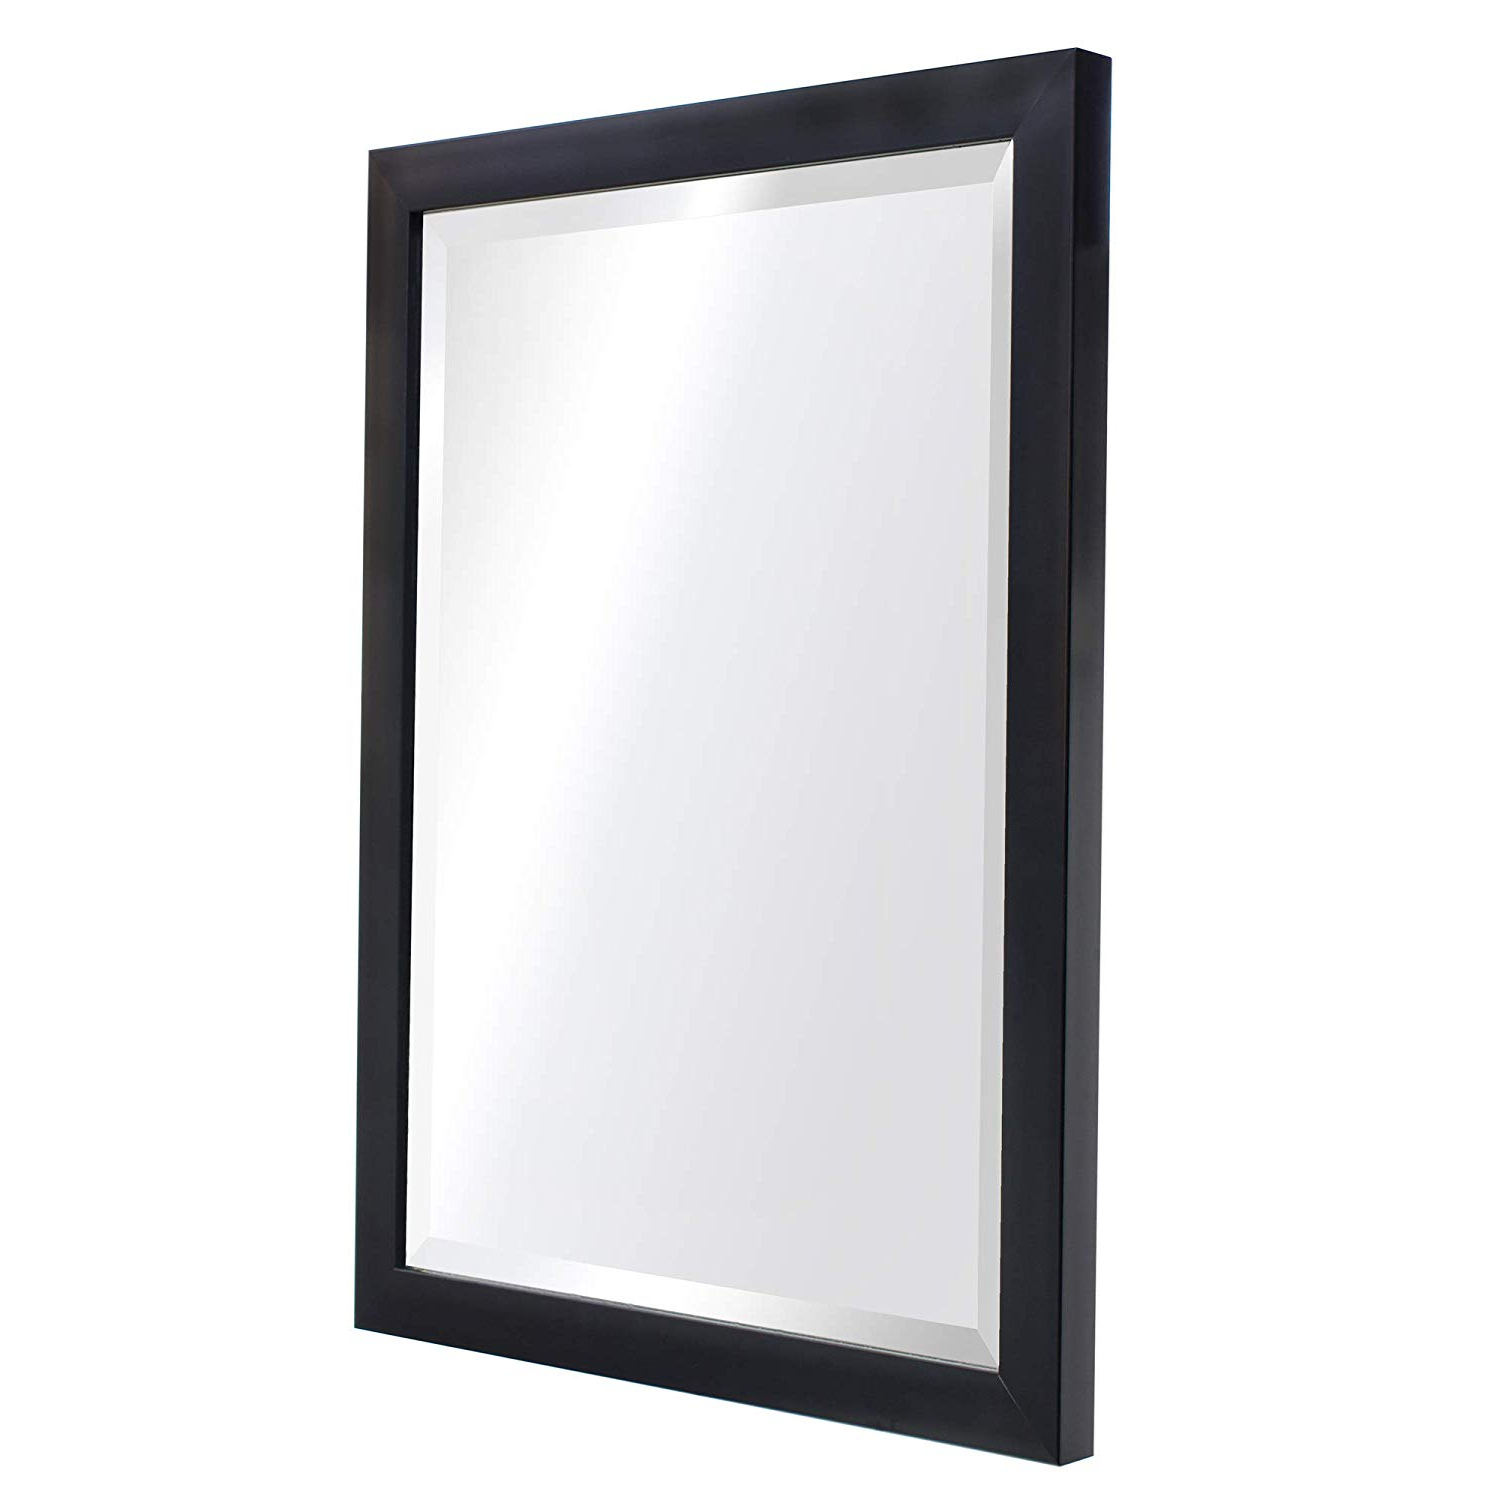 "Modern Black Wall Mirrors Regarding Favorite Mirror Trend Clean Modern Black Frame Wall Mirror Contemporary Style Mirror  For Bathroom Mirror For Living Room For Bedroom Makeup Mirror (16"" X 20"") (View 12 of 20)"